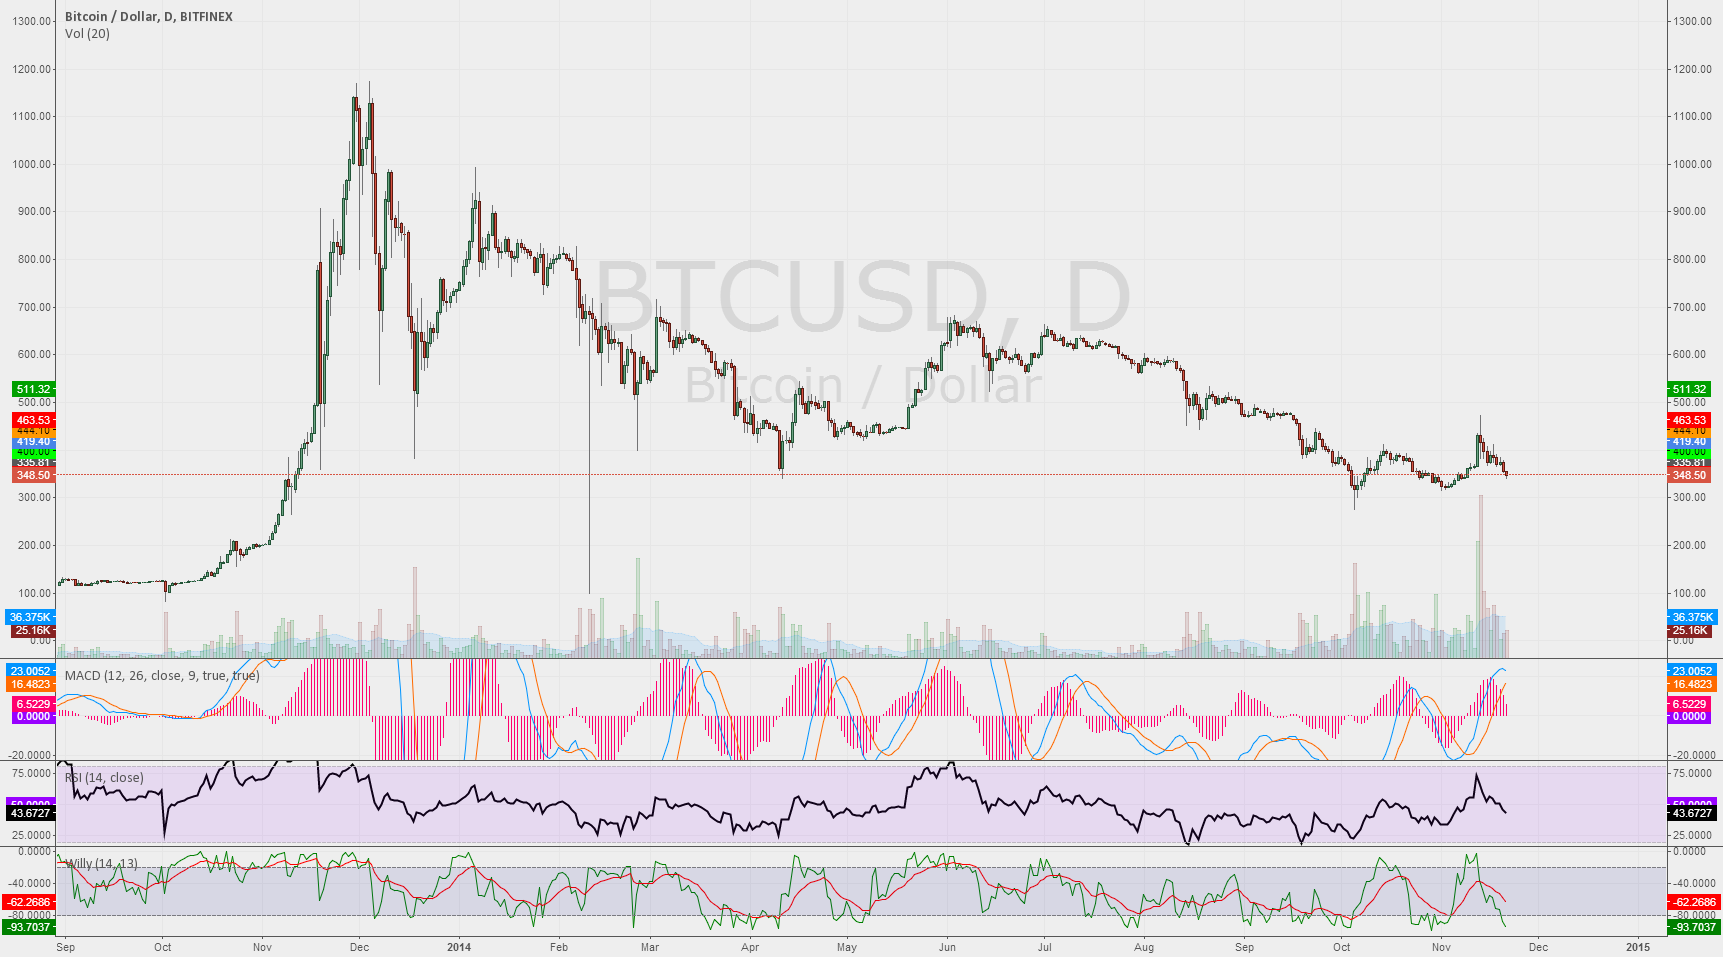 Amazing similarity between H1 and Daily charts #BTC #Bitfinex